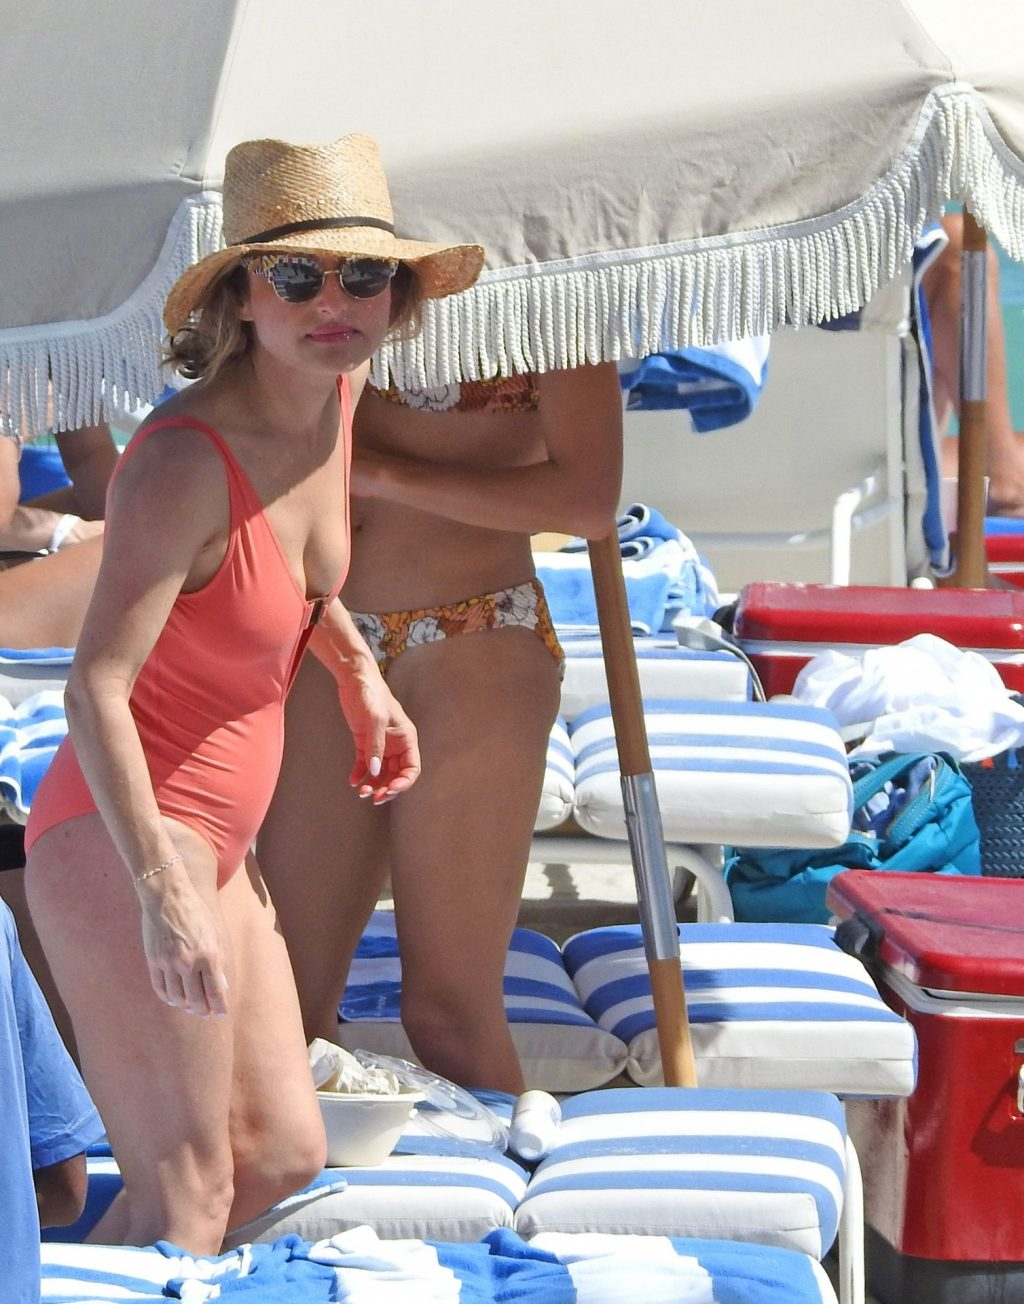 Giada De Laurentiis Show Off Her Body and Her Signature Smile (120 Photos)